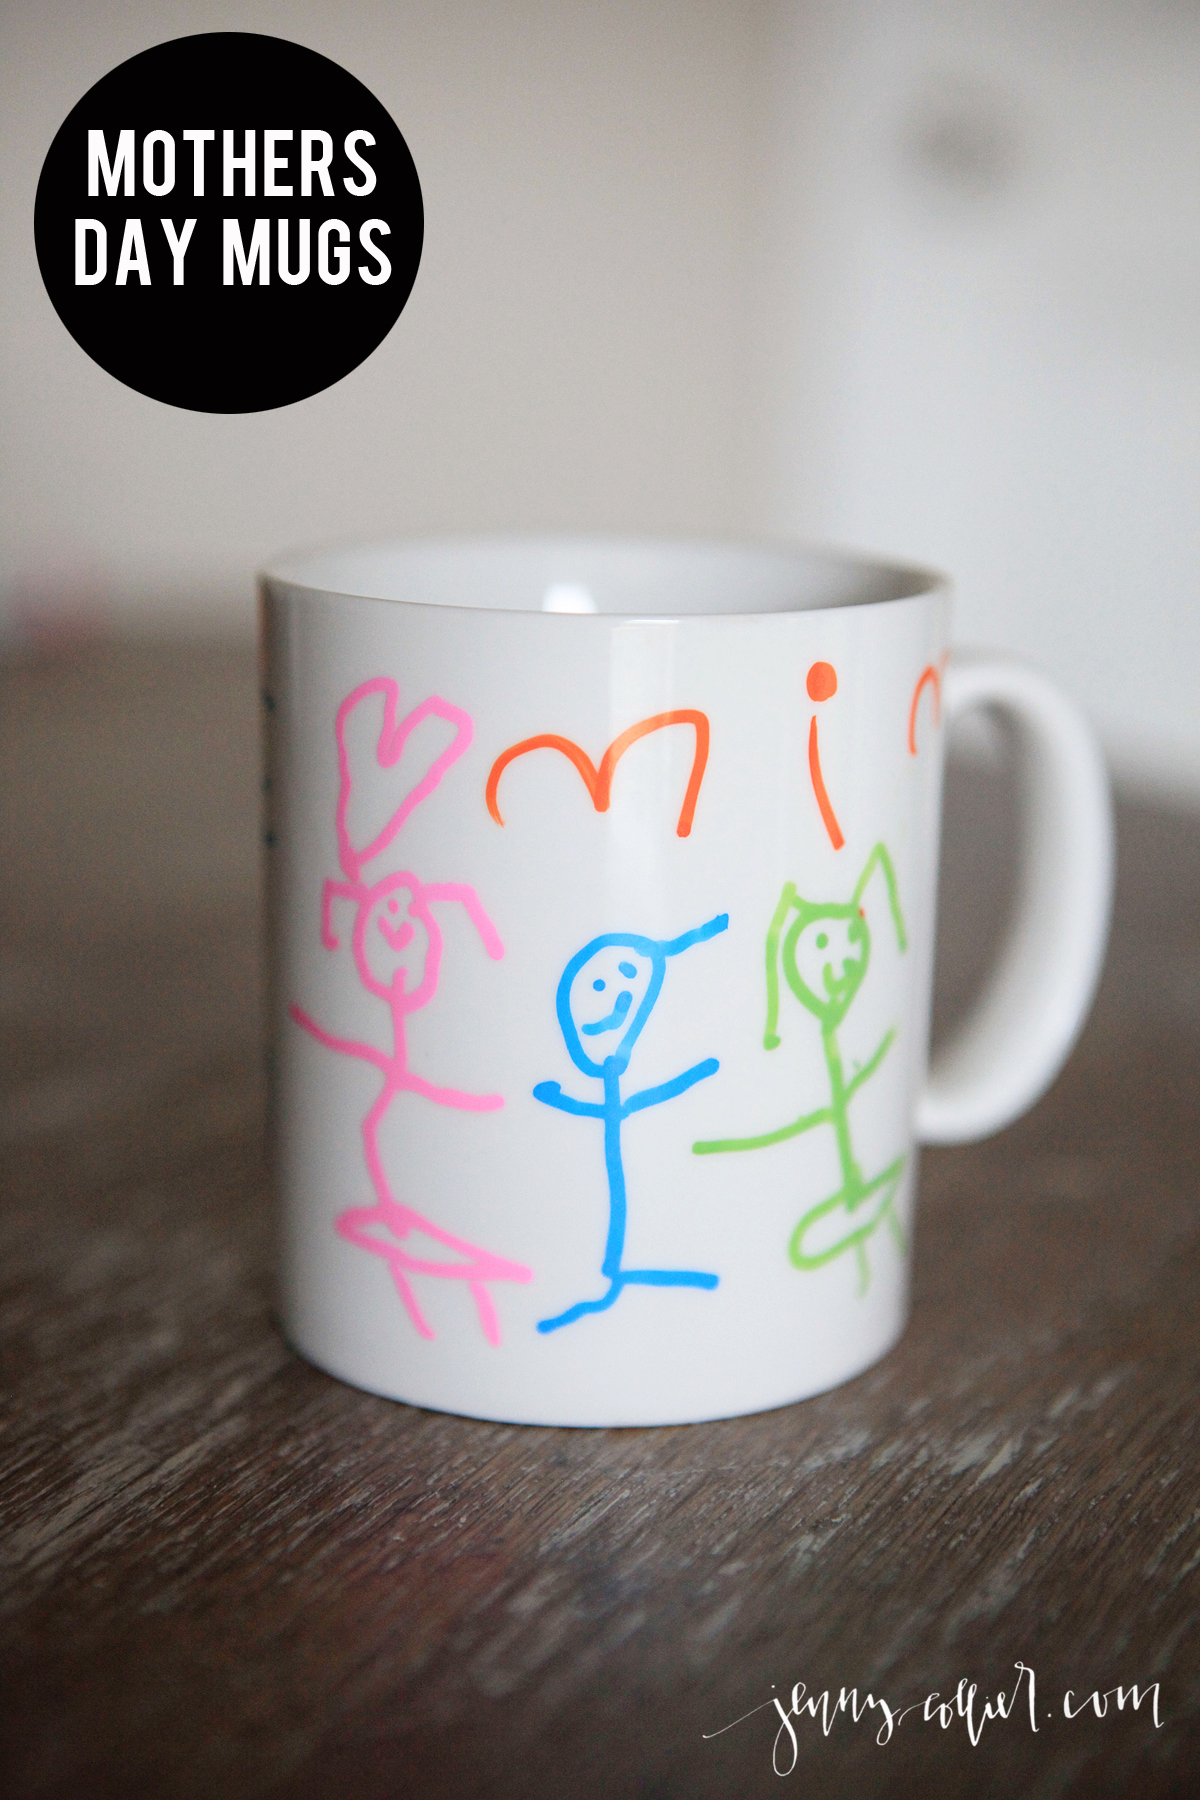 Mothers Day Mugs Jenny Collier Blog